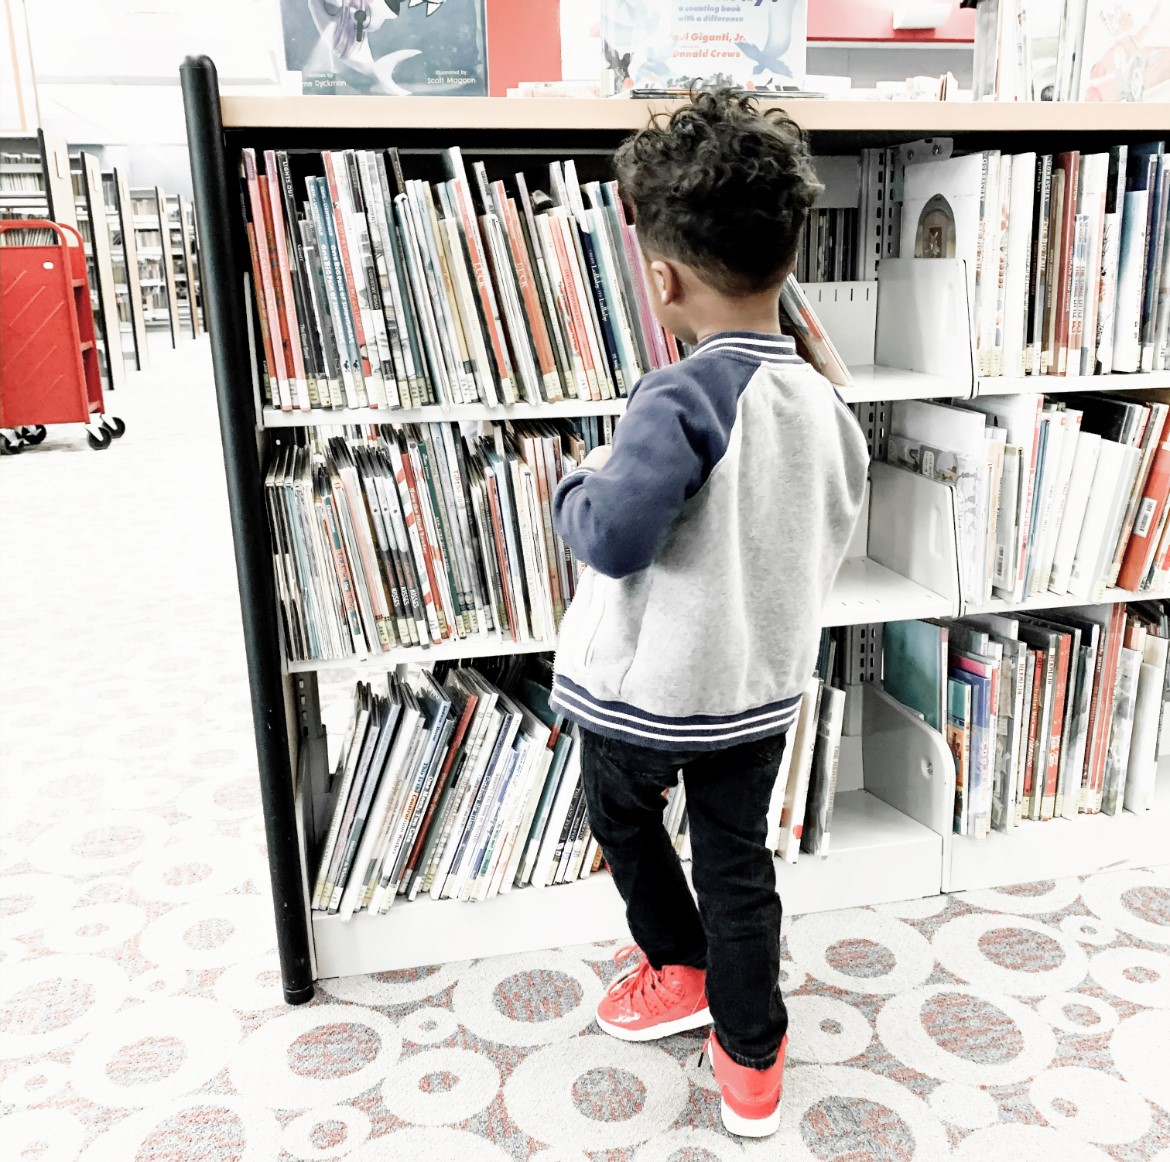 a kid standing in front of books